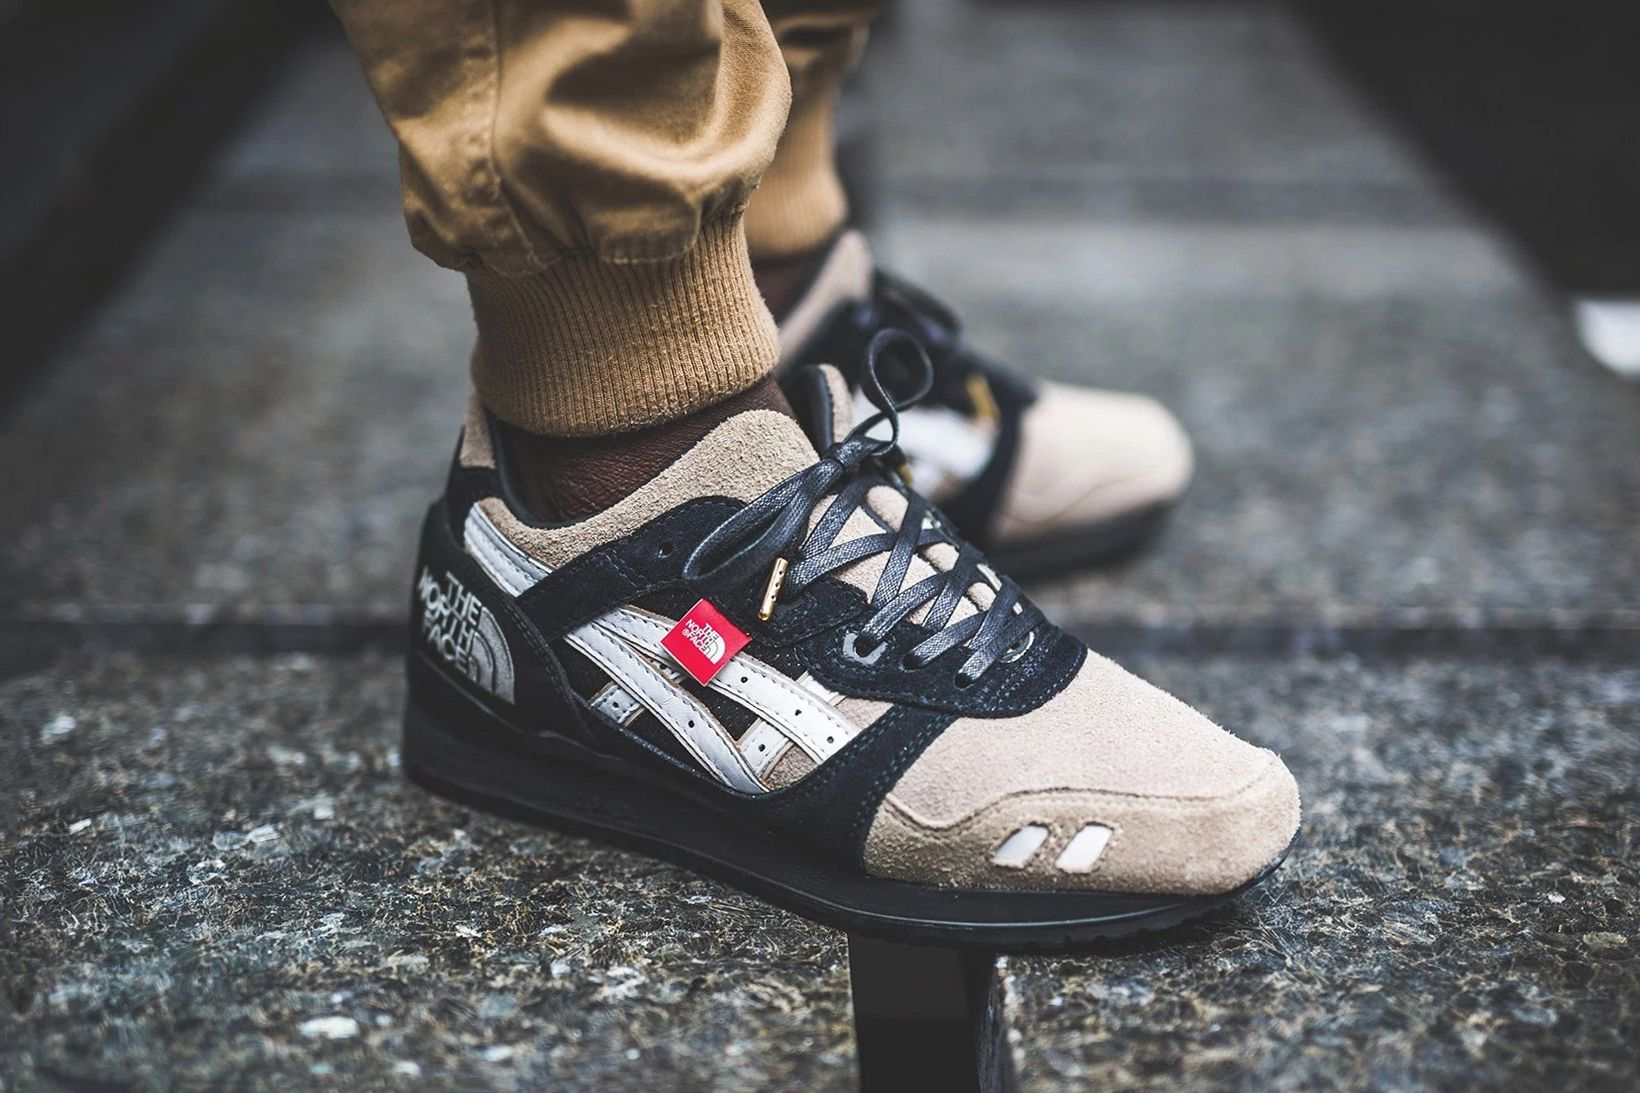 The North Face x ASICS GEL-Lyte III